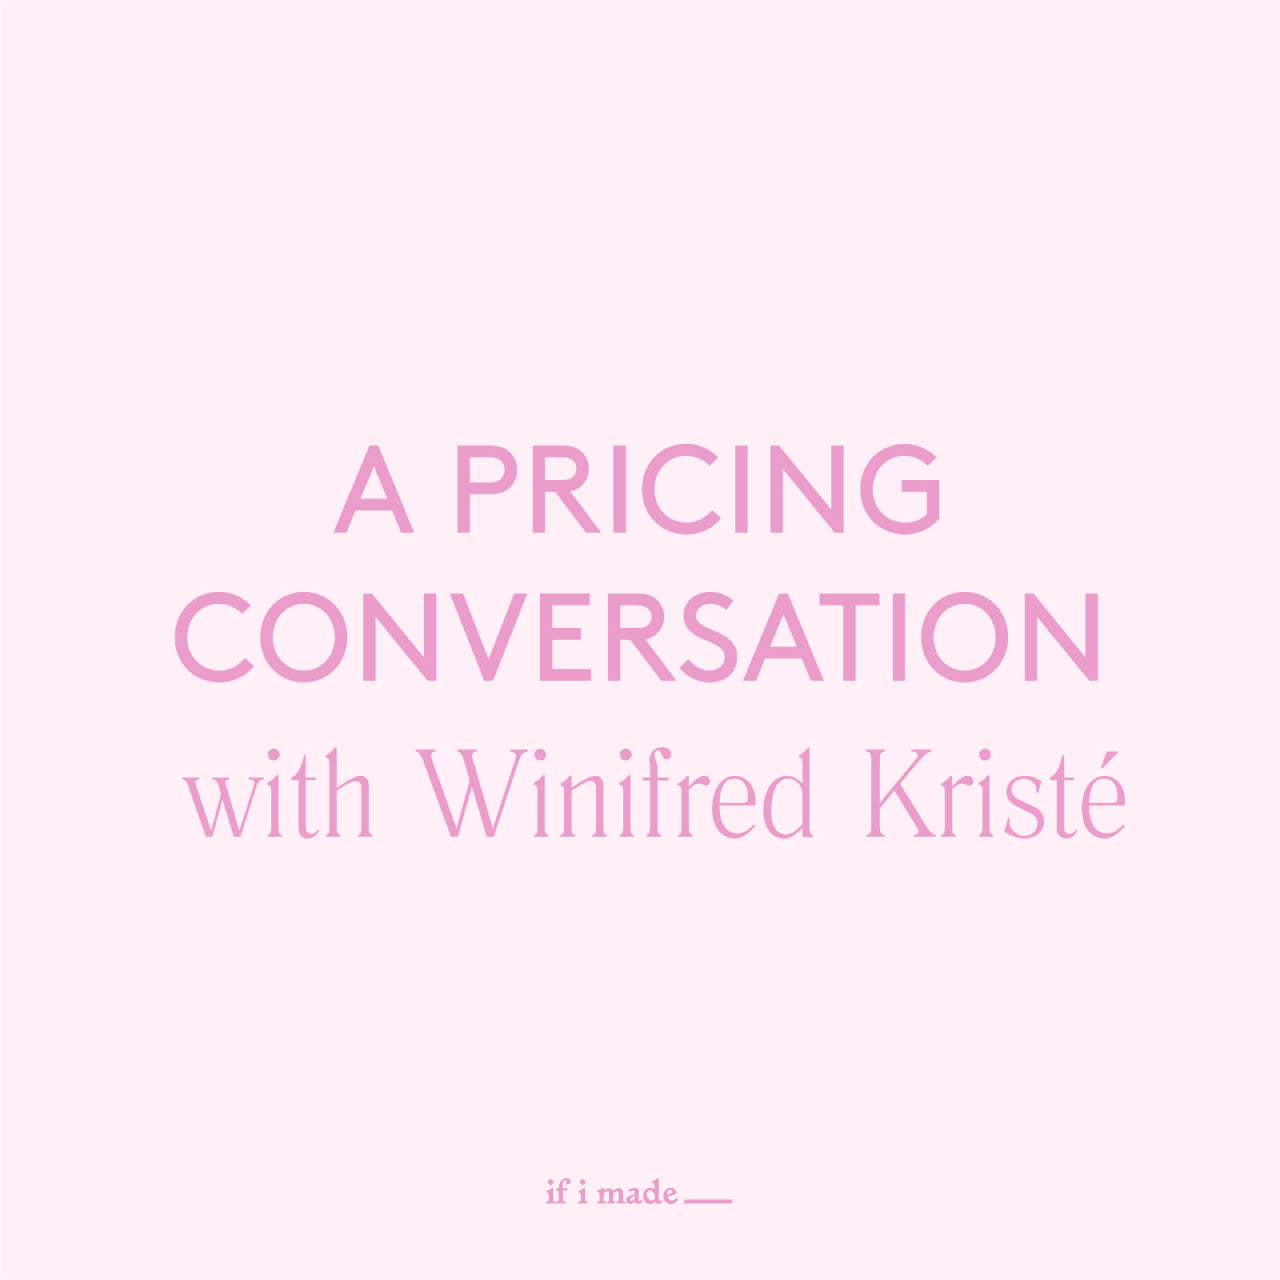 A Pricing Conversation with Winifred Kriste